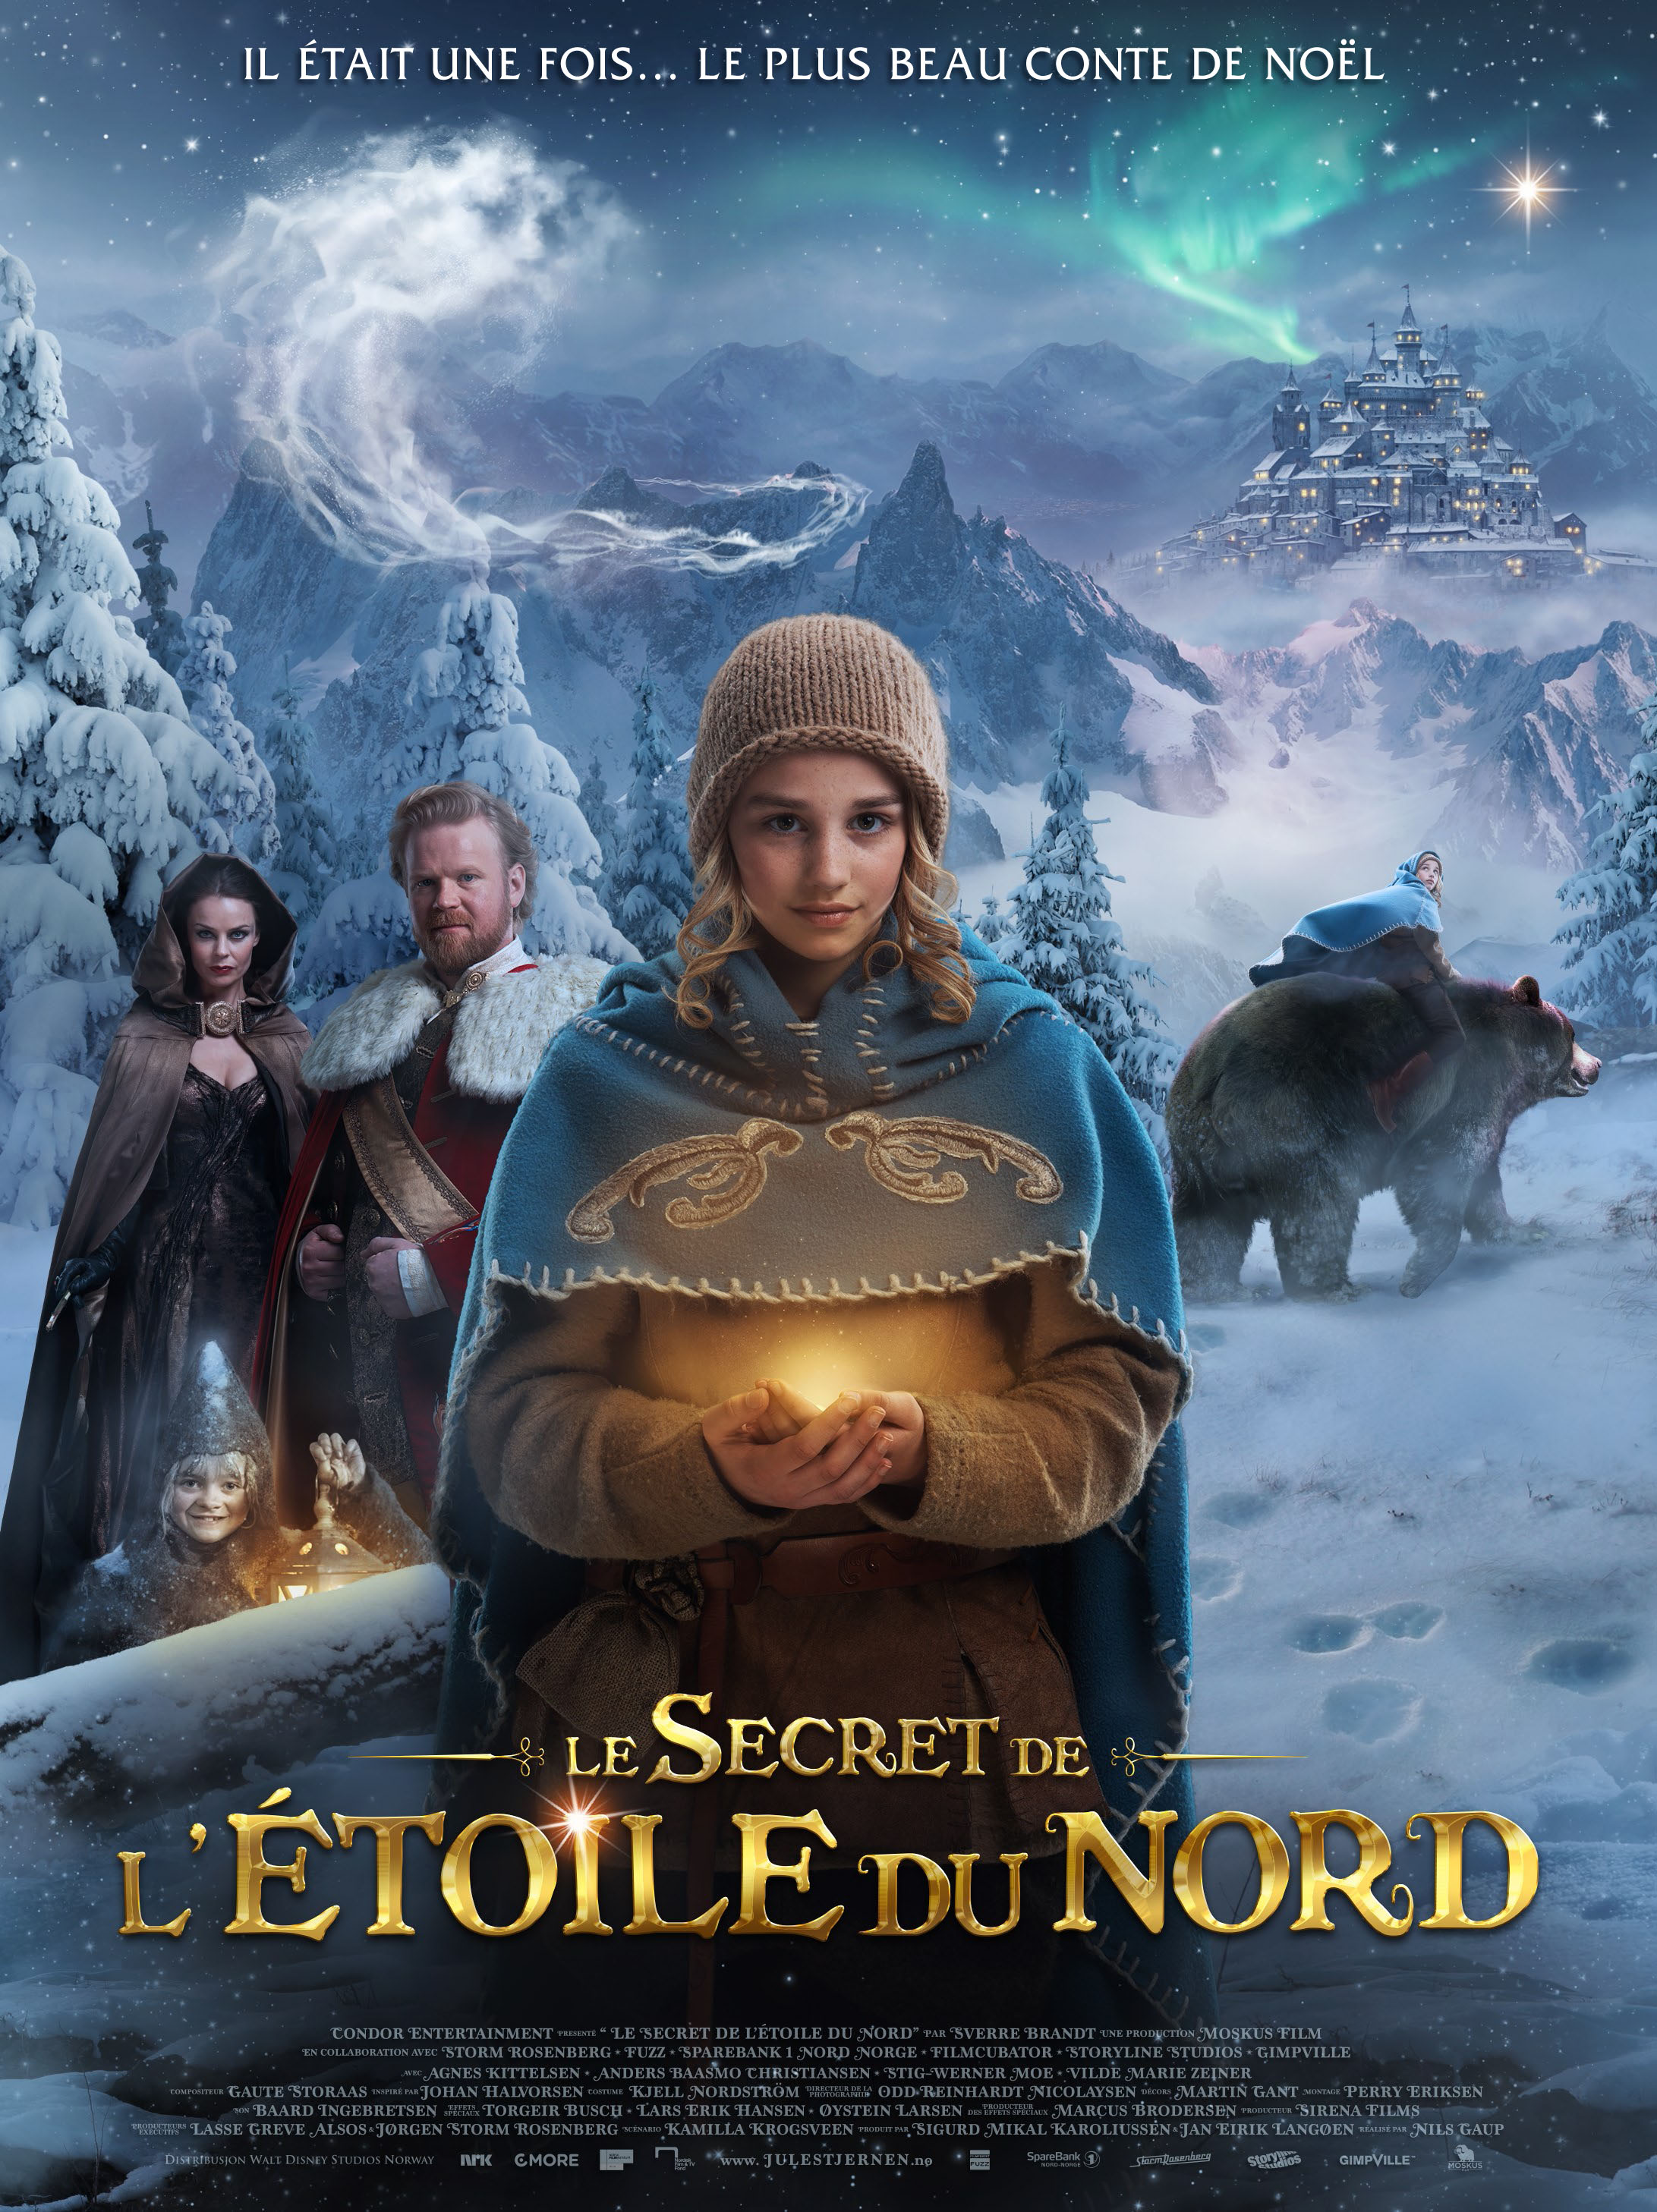 [Multi] Le Secret de l'étoile du nord DVDRIP FRENCH